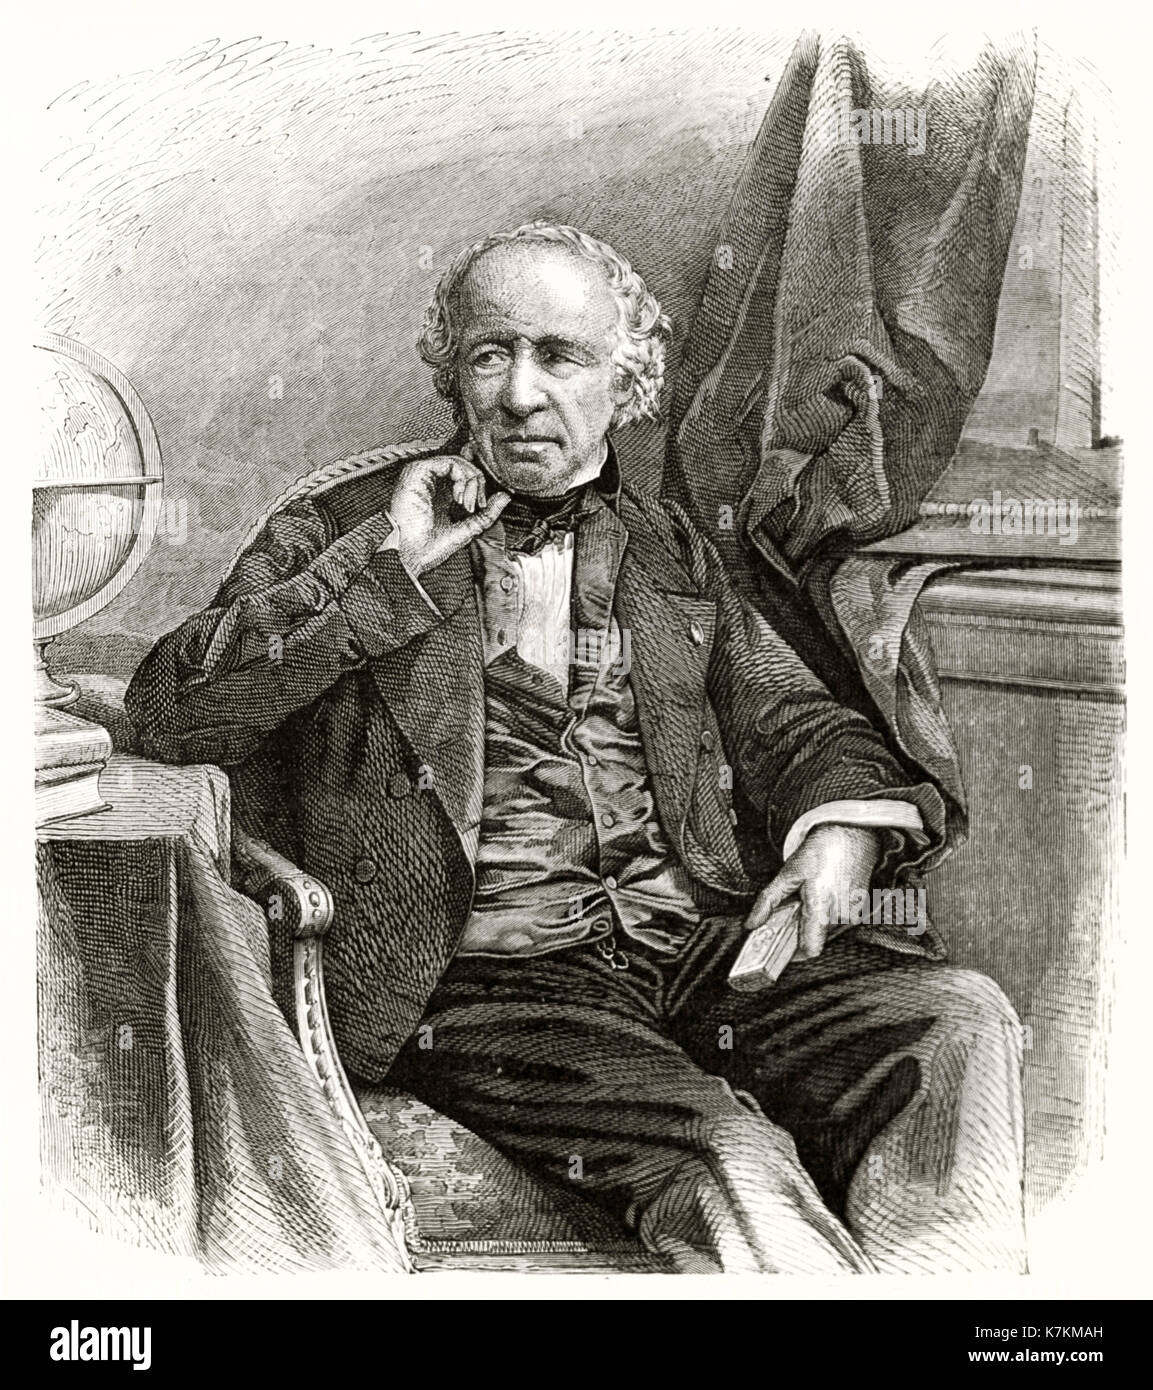 Edme Francois Jomard (1777 – 1862), French engineer, geographer and archaeologist. By Rousseau after Salomon, publ. on Le Tour du Monde, Paris, 1862 - Stock Image